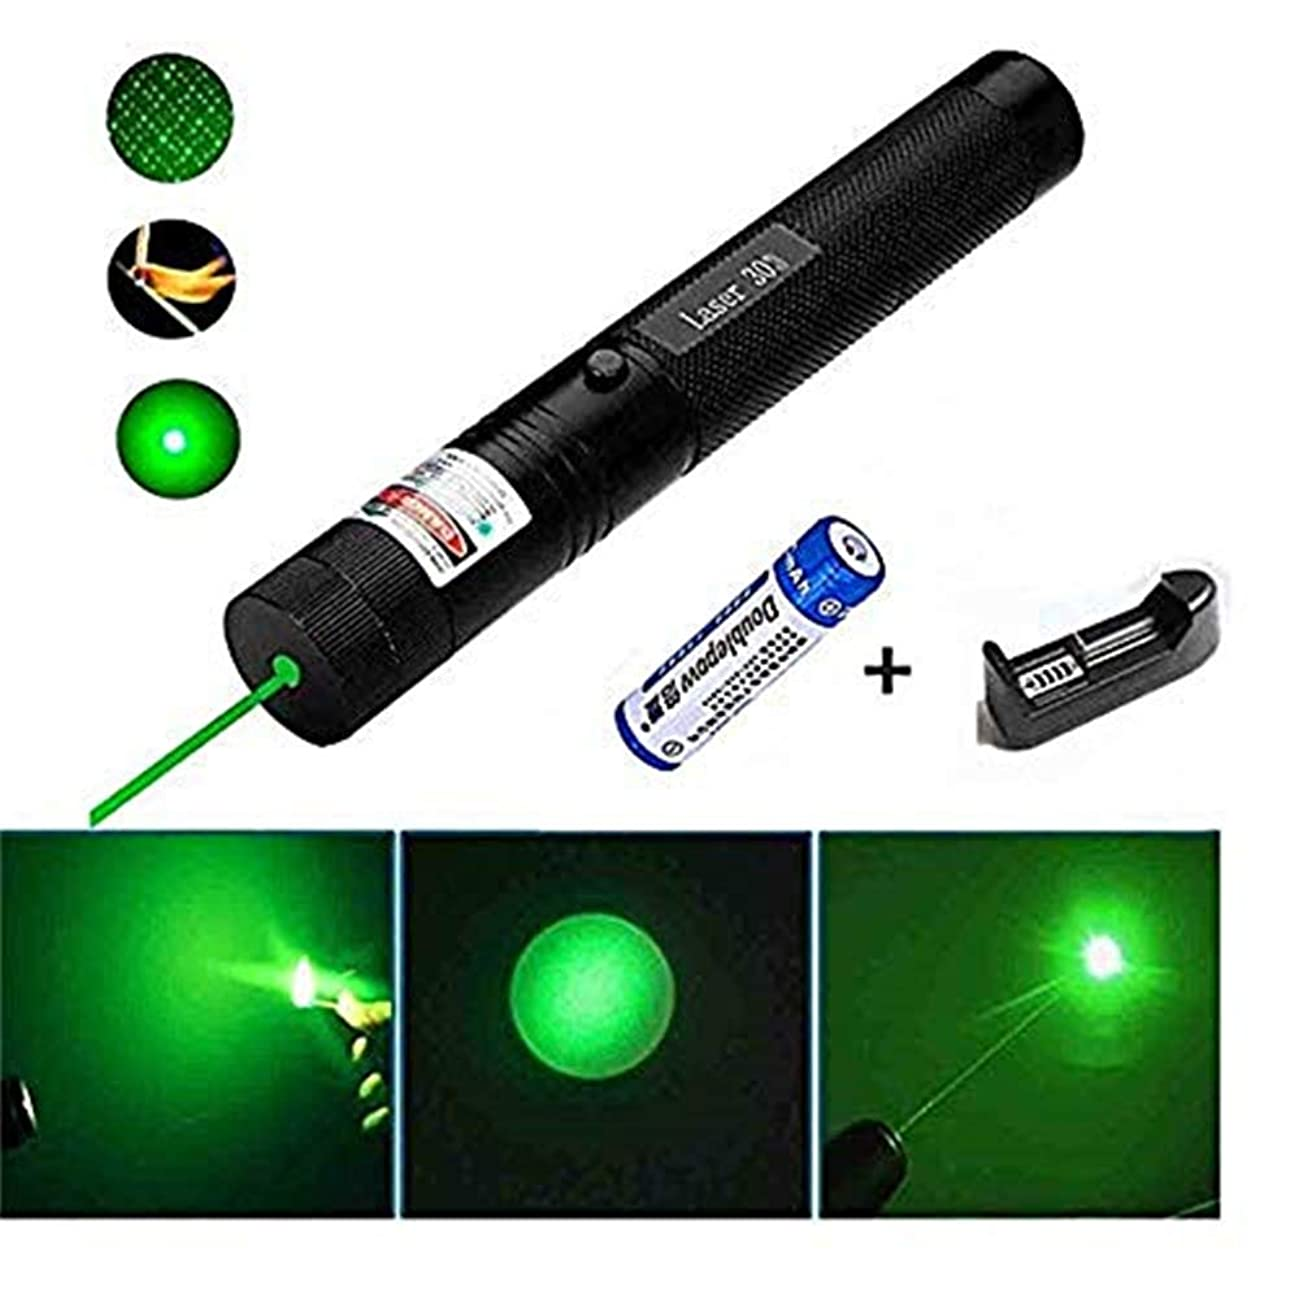 Laser Pointer Tactical Green Hunting Rifle Scope Sight Laser Pen, Demo Remote Pen Pointer Projector Travel Outdoor Flashlight, LED Interactive Baton Funny Laser Toy